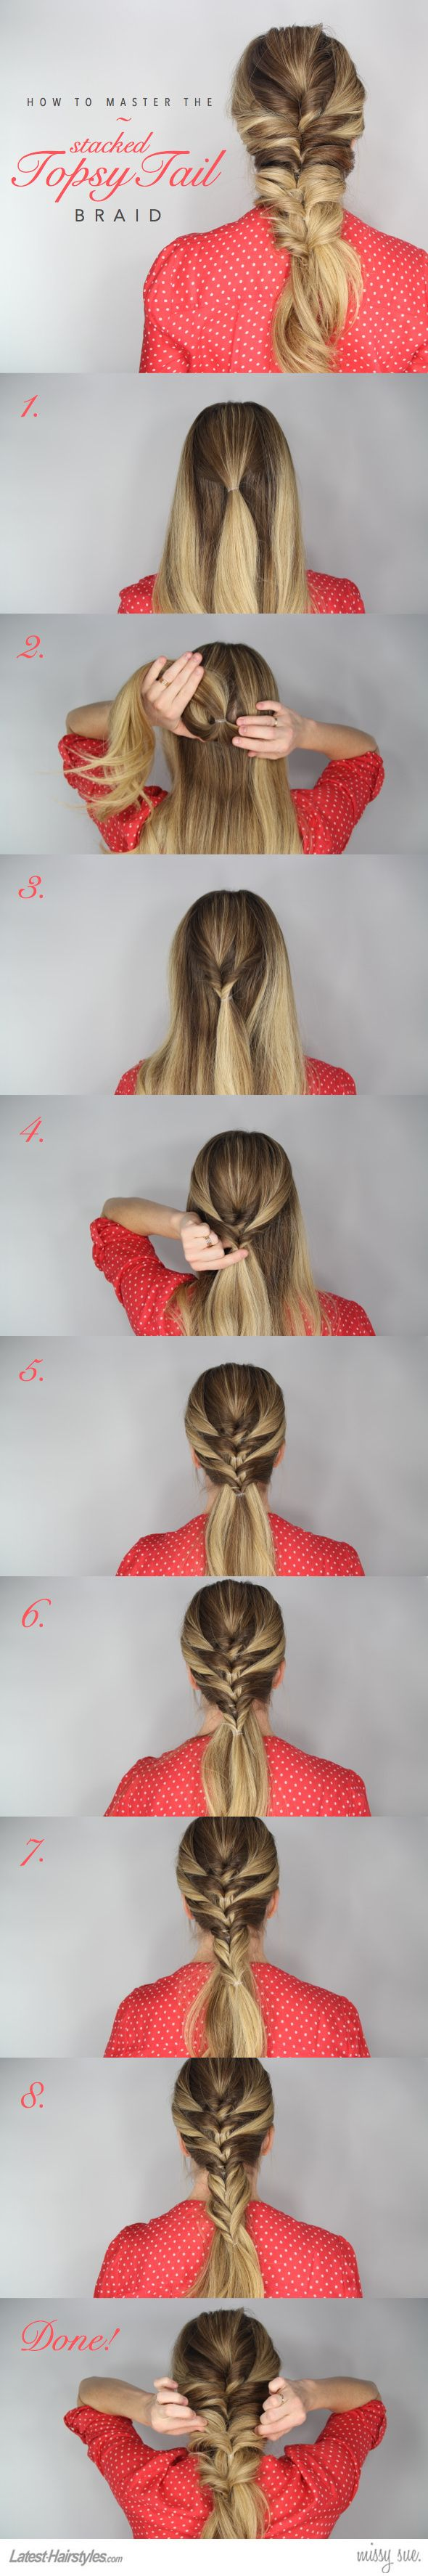 Stacked topsy tail braid tutorial braid board pinterest tail